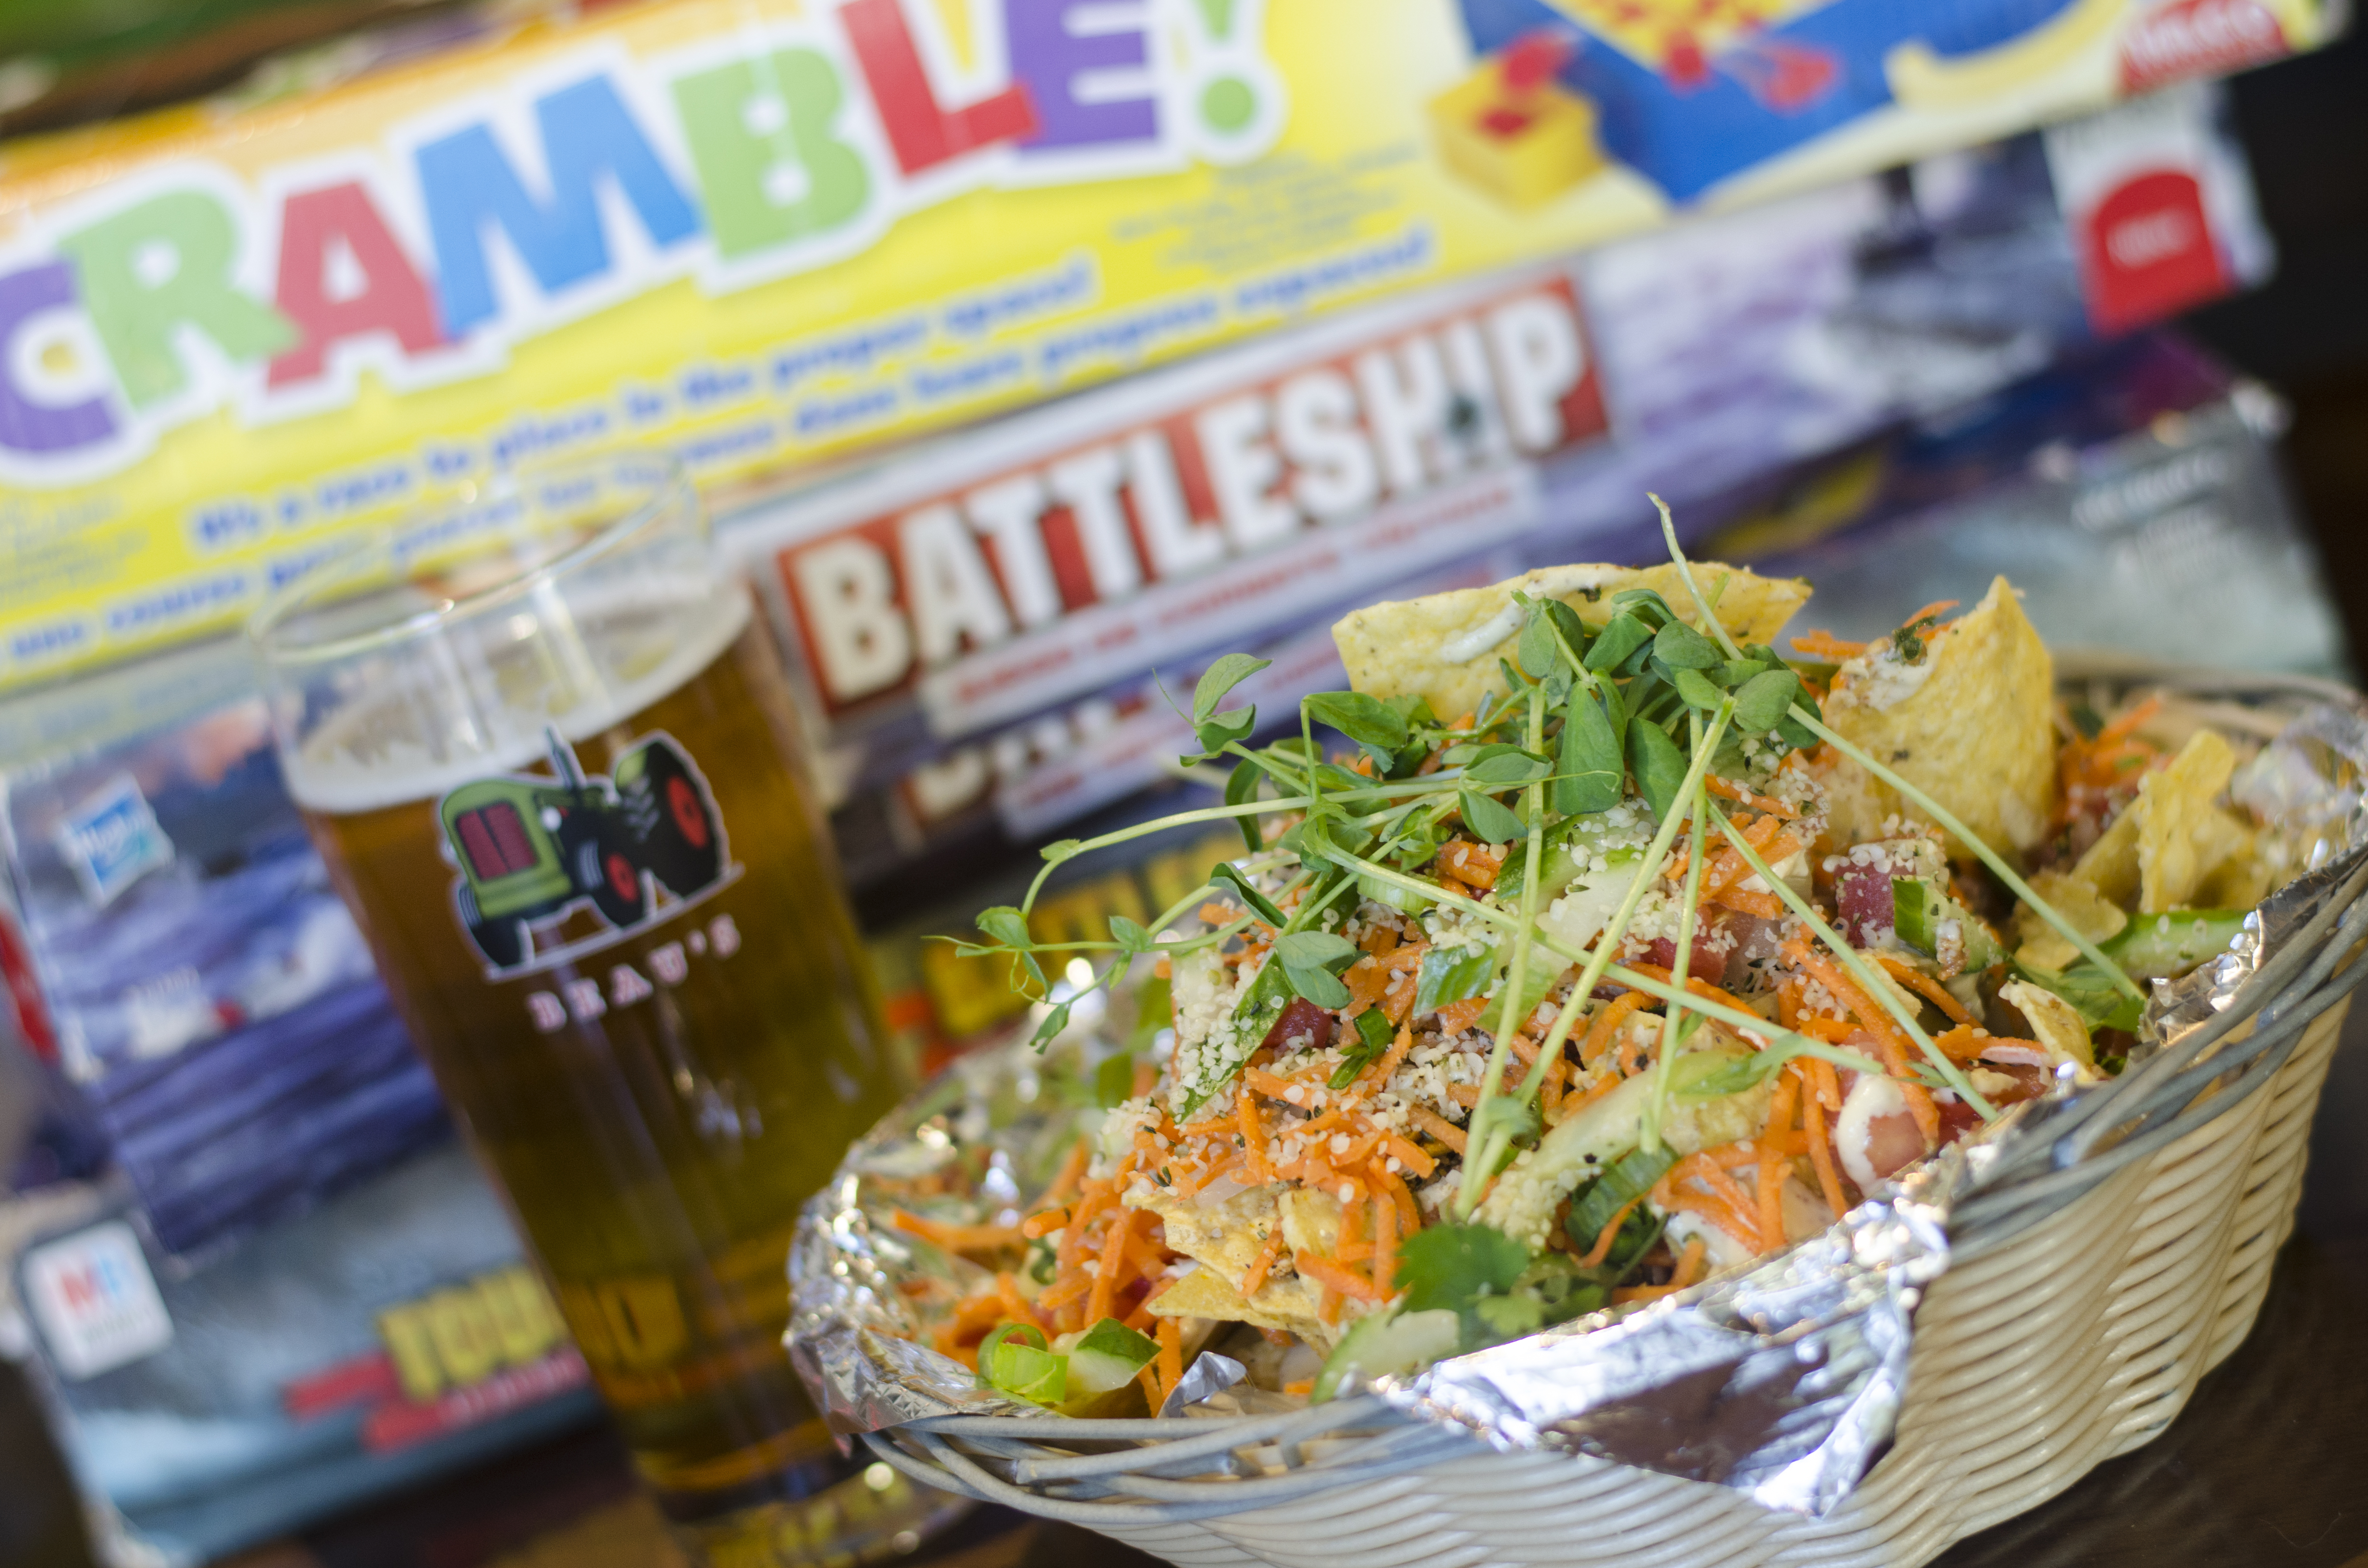 Nachos, beer and board games are the way to go at Carrots 'N Dates in Windsor, Ontario.